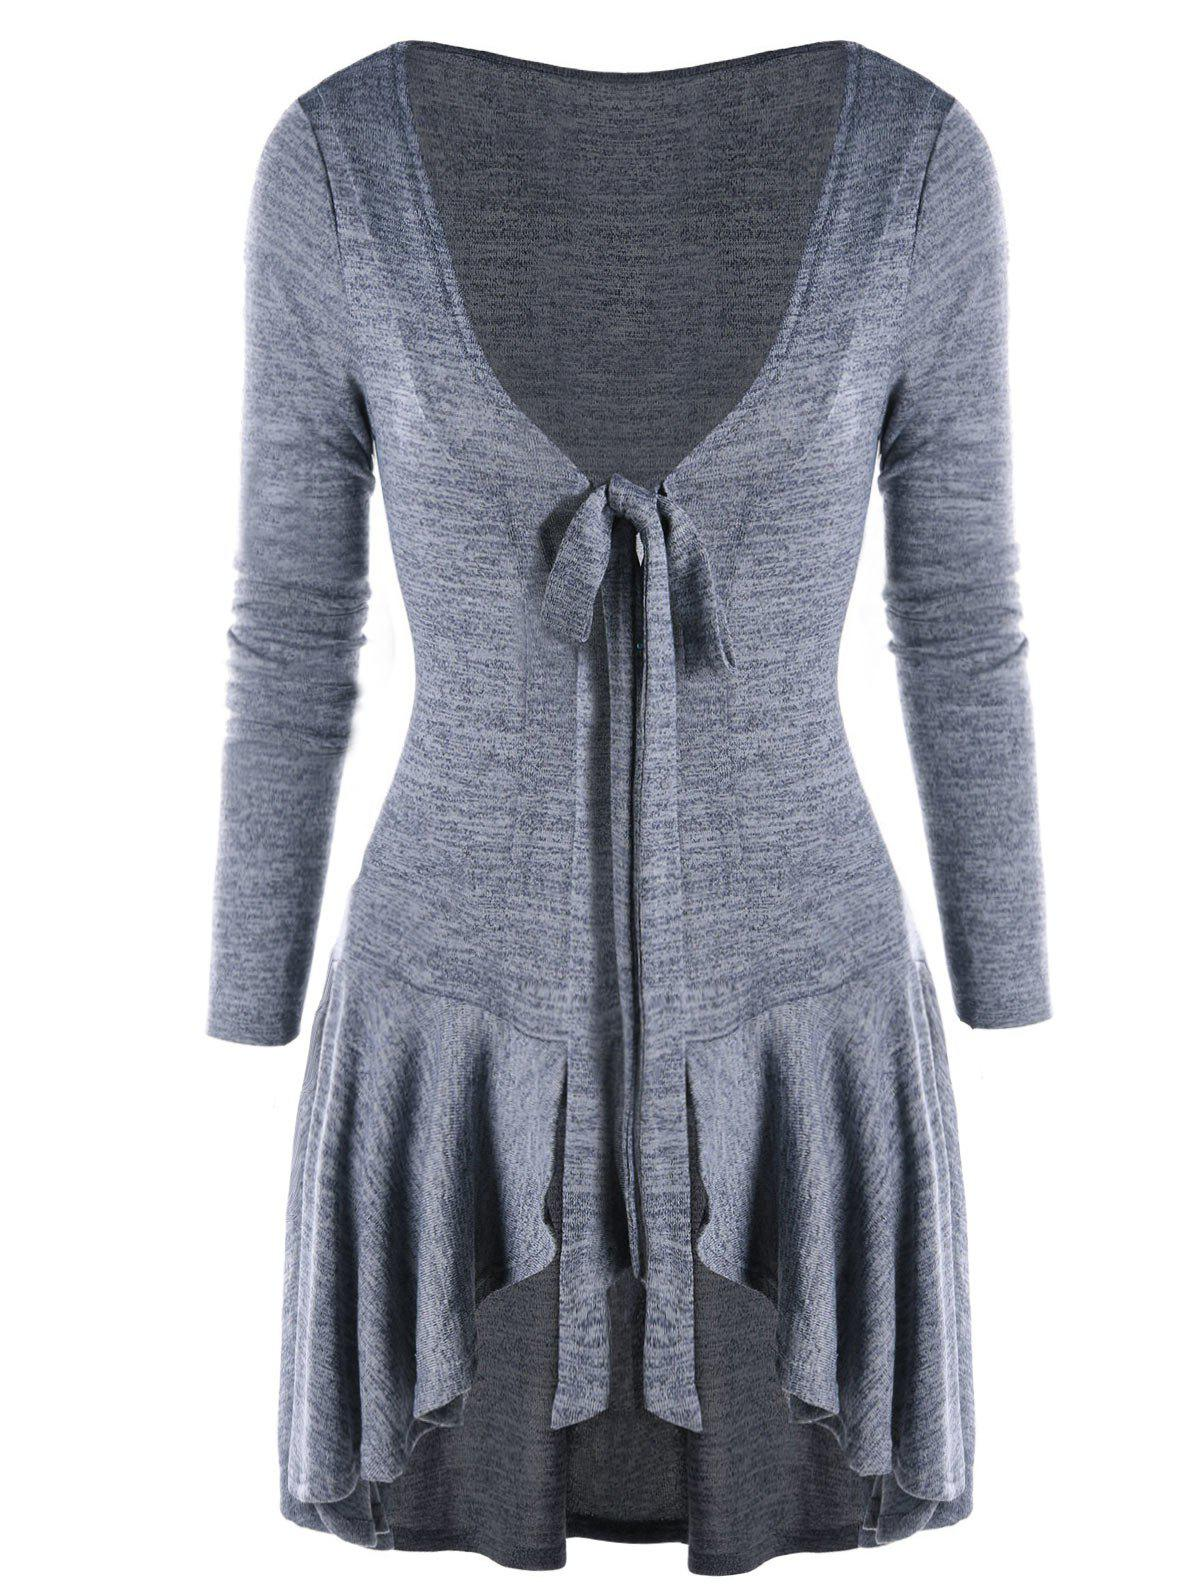 Bow Tie Neck Heathered High Low Cardigan - GRAY L